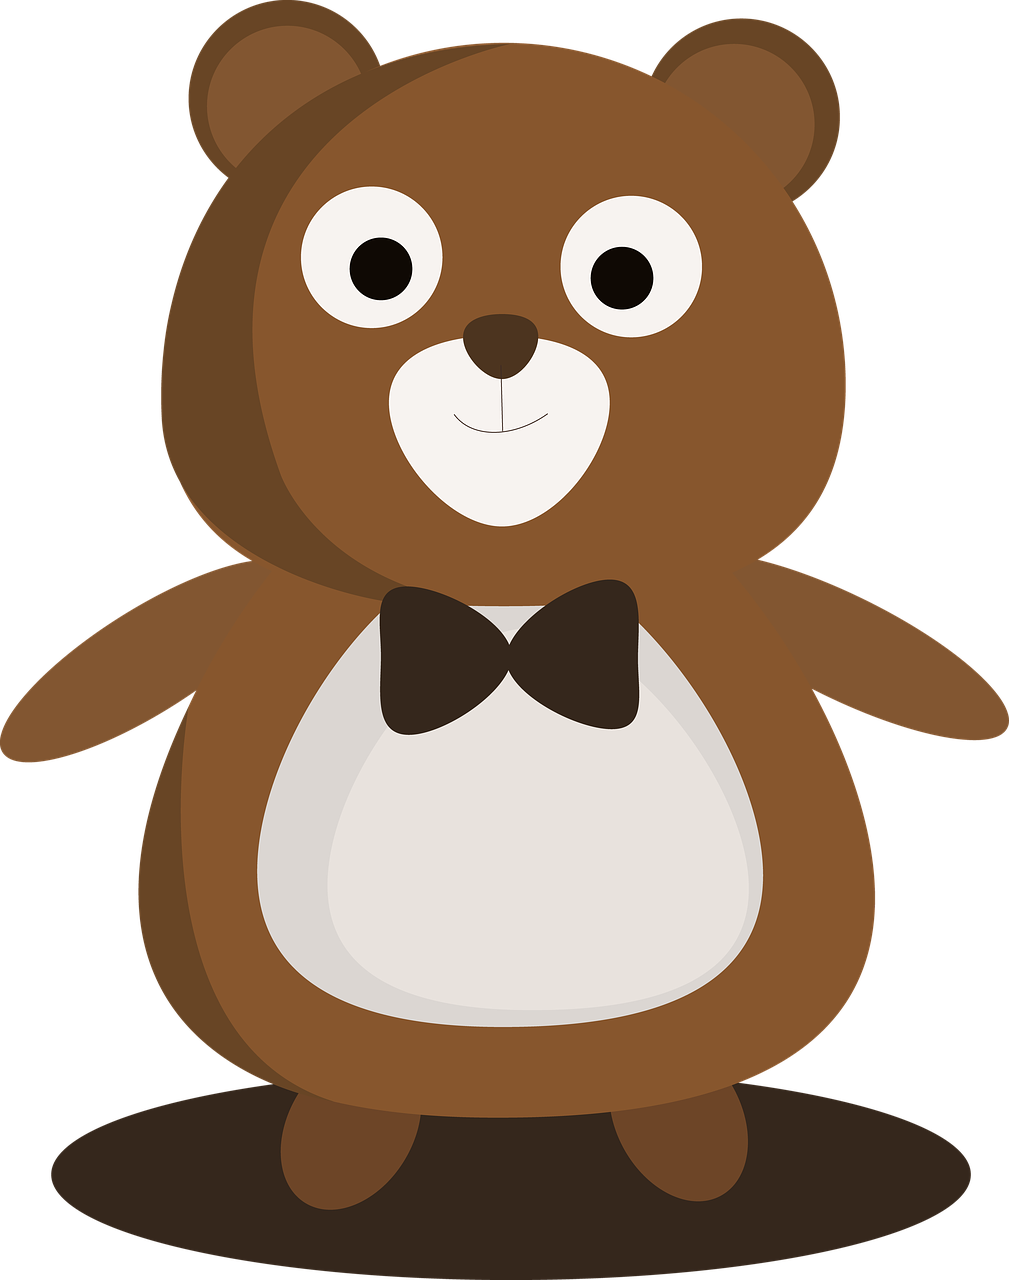 little bear cartoon cute free photo